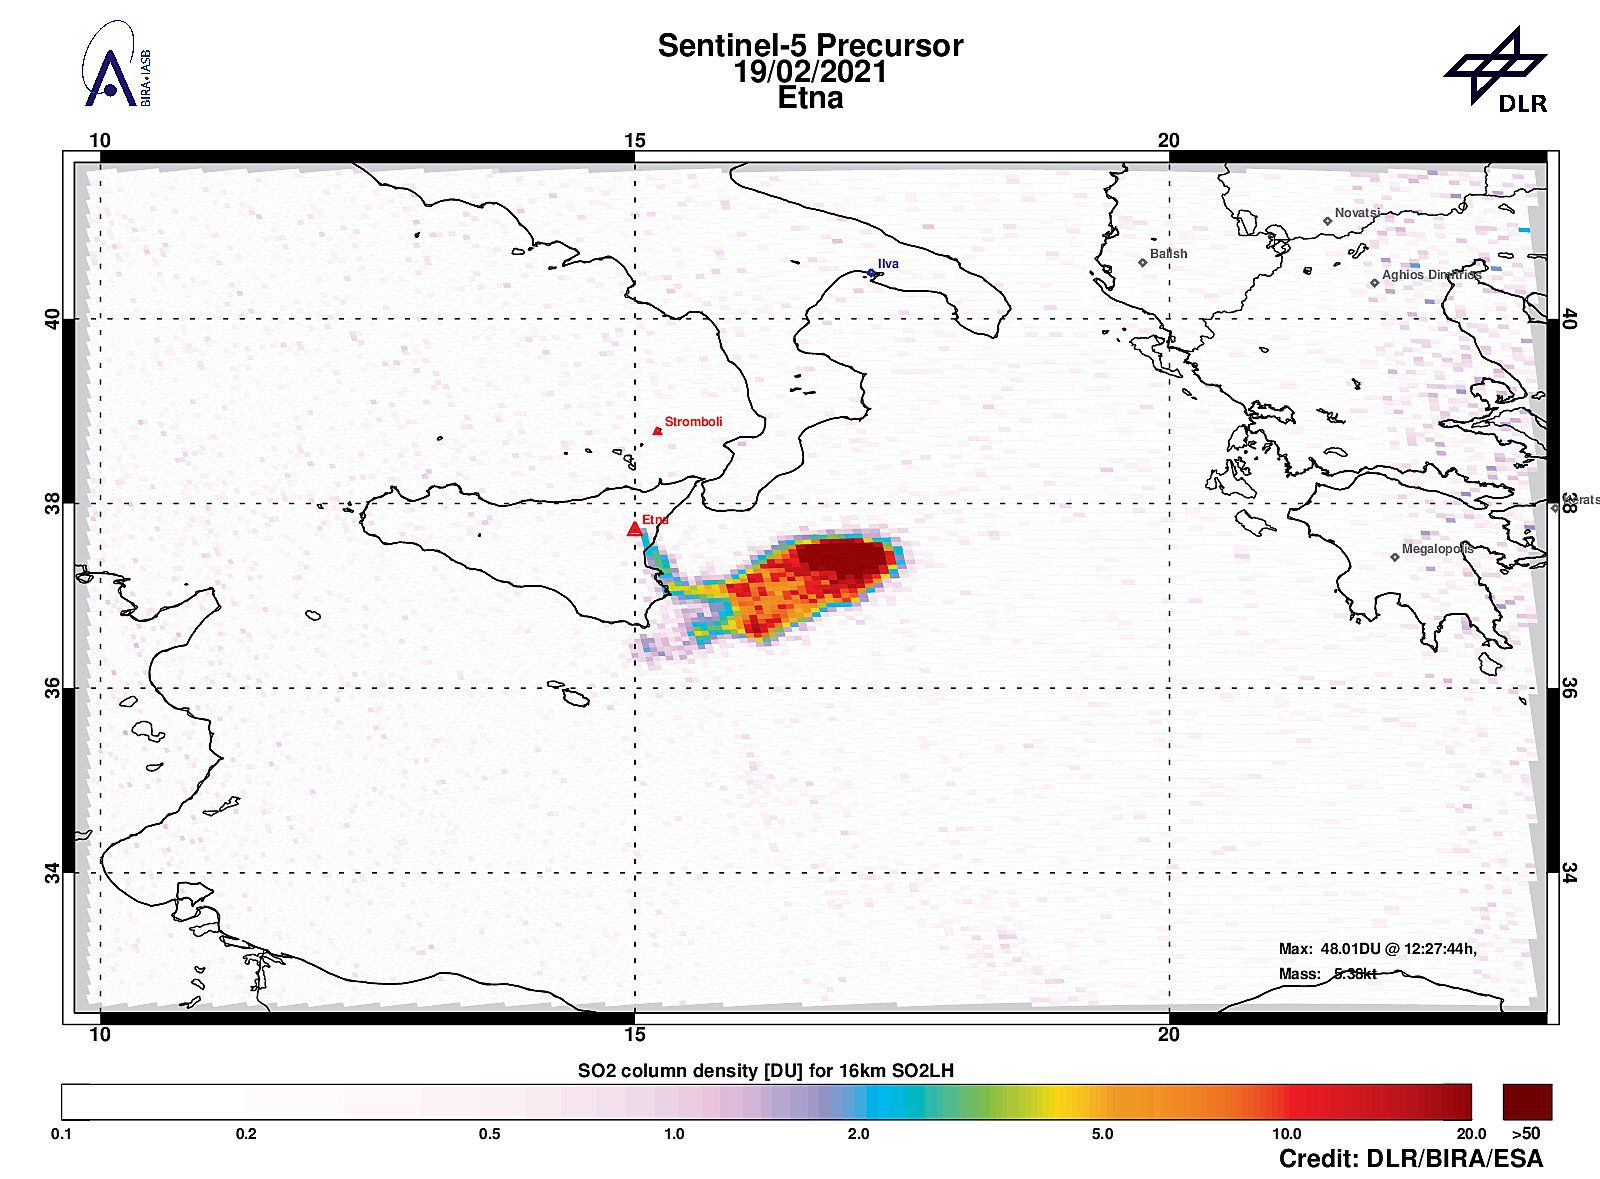 Etna - a strong sulfur dioxide signal is detected near Etna, with 47.87 DU of SO2 at an altitude of about 16 km on 02/19/2021 - Doc. Tropomi